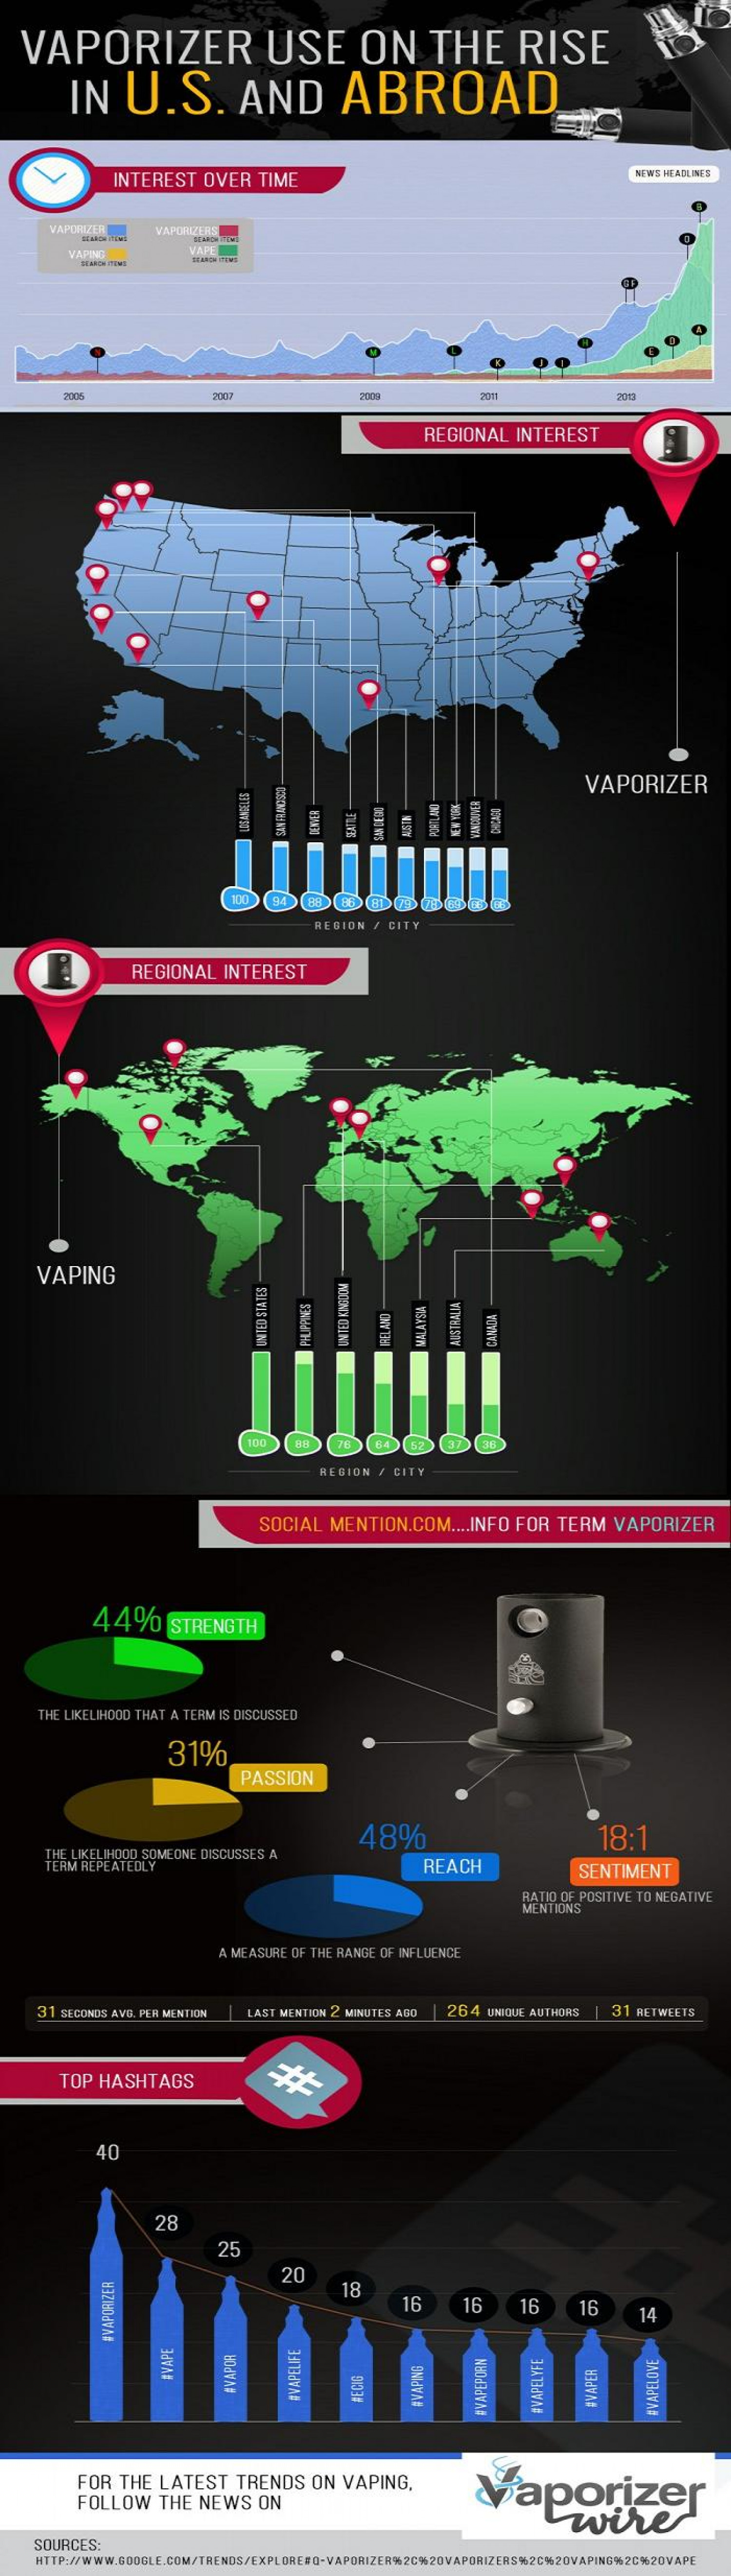 Vaporizer On The Rise In U.S. And Abroad Infographic